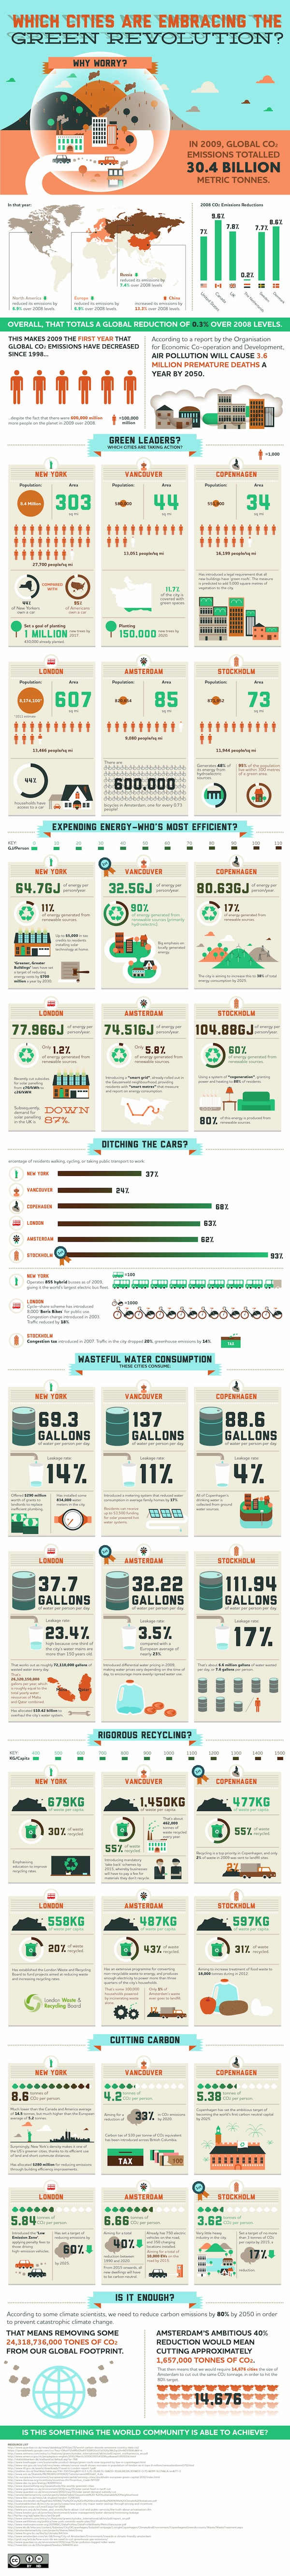 Infographic: Green cities.  Cities are where green living and sustainability begin